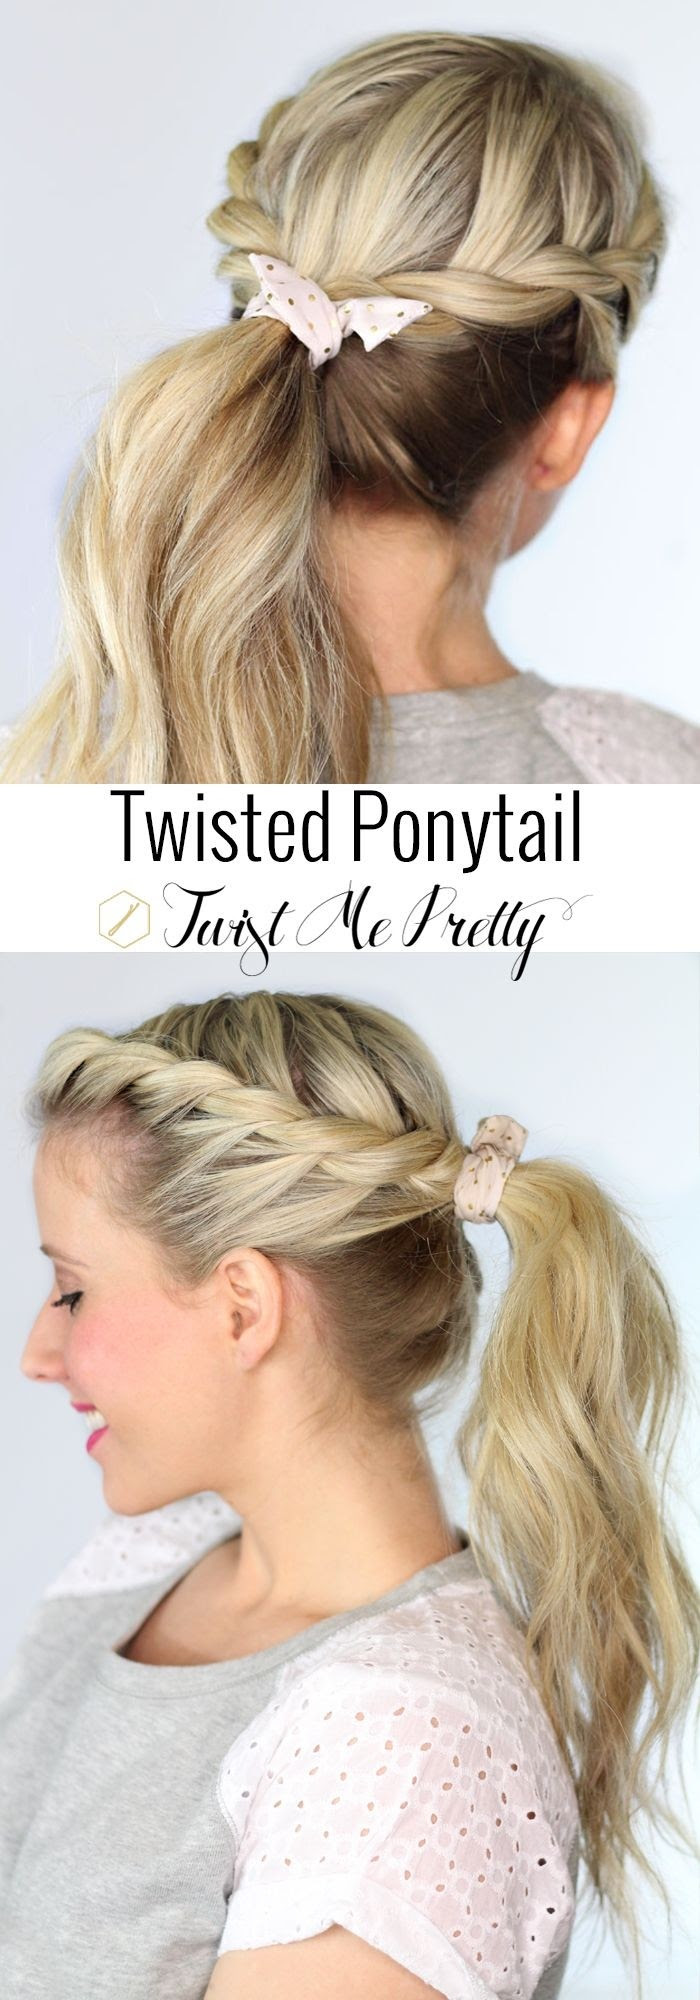 39+ Easy Ponytail Hairstyle For Long Hair